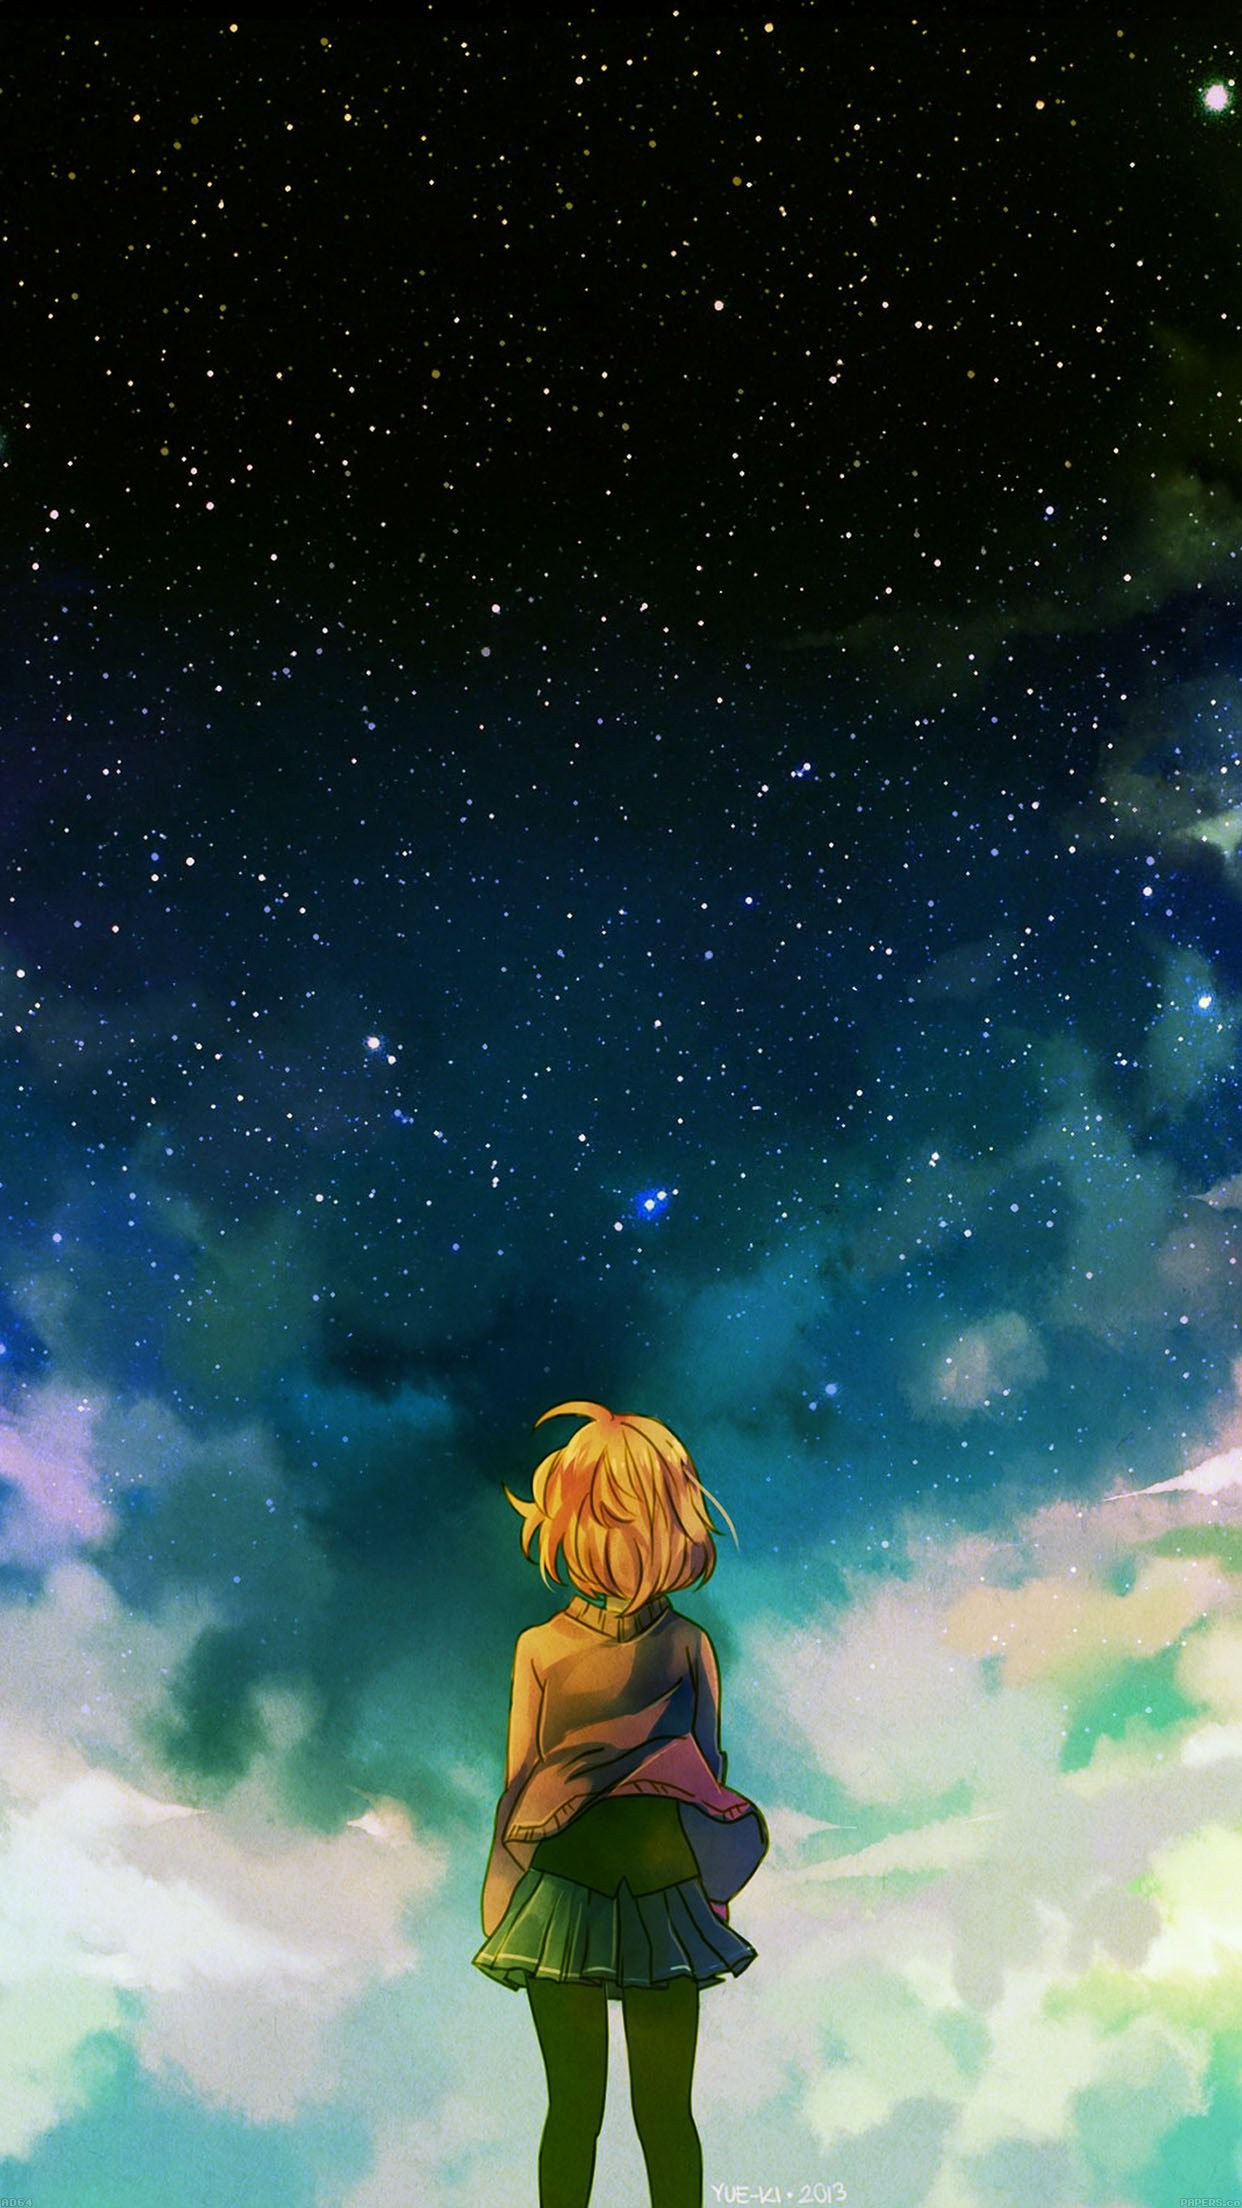 Android Wallpaper Anime Starry Night Illust Girl Hd - Starry Starry Night Anime , HD Wallpaper & Backgrounds